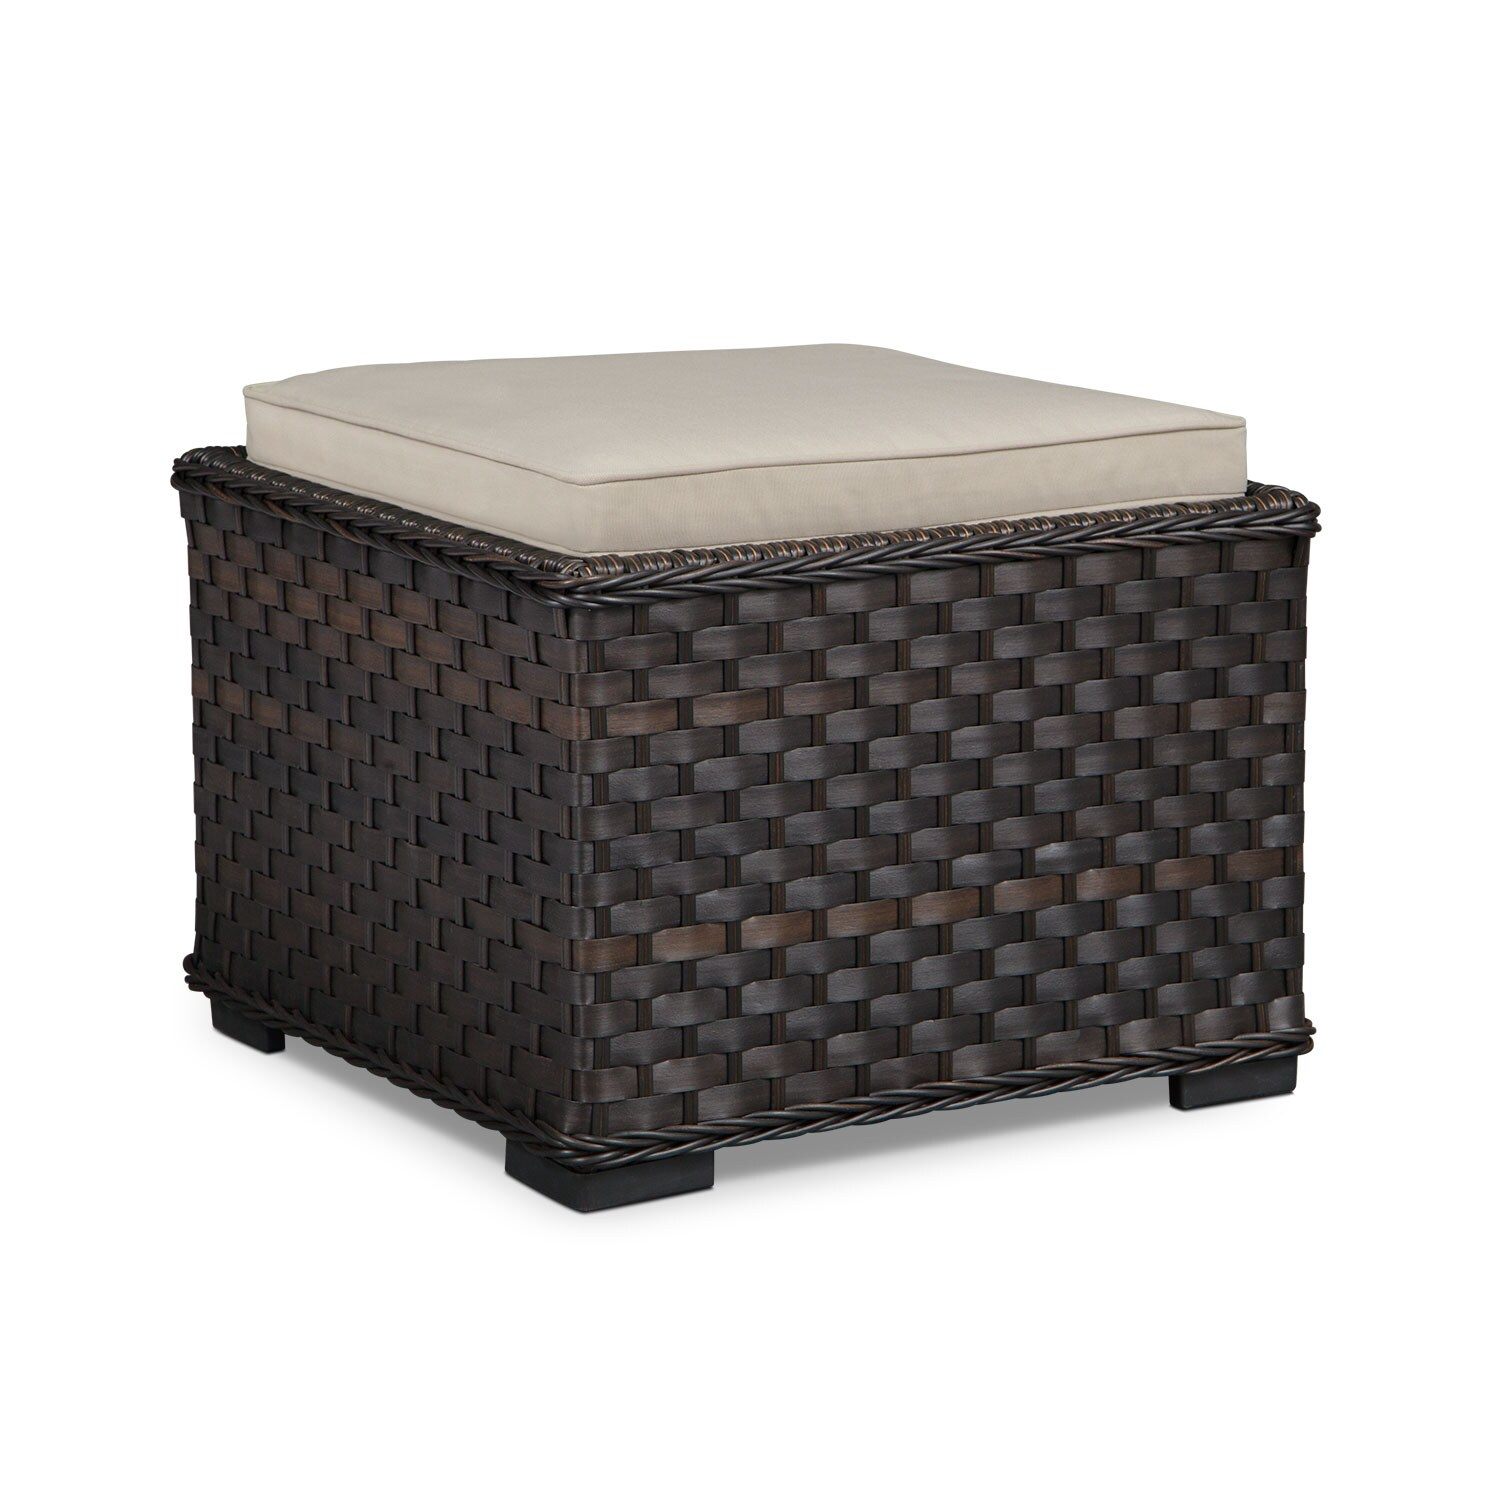 Outdoor Furniture - Doral Outdoor Side Table - Tan